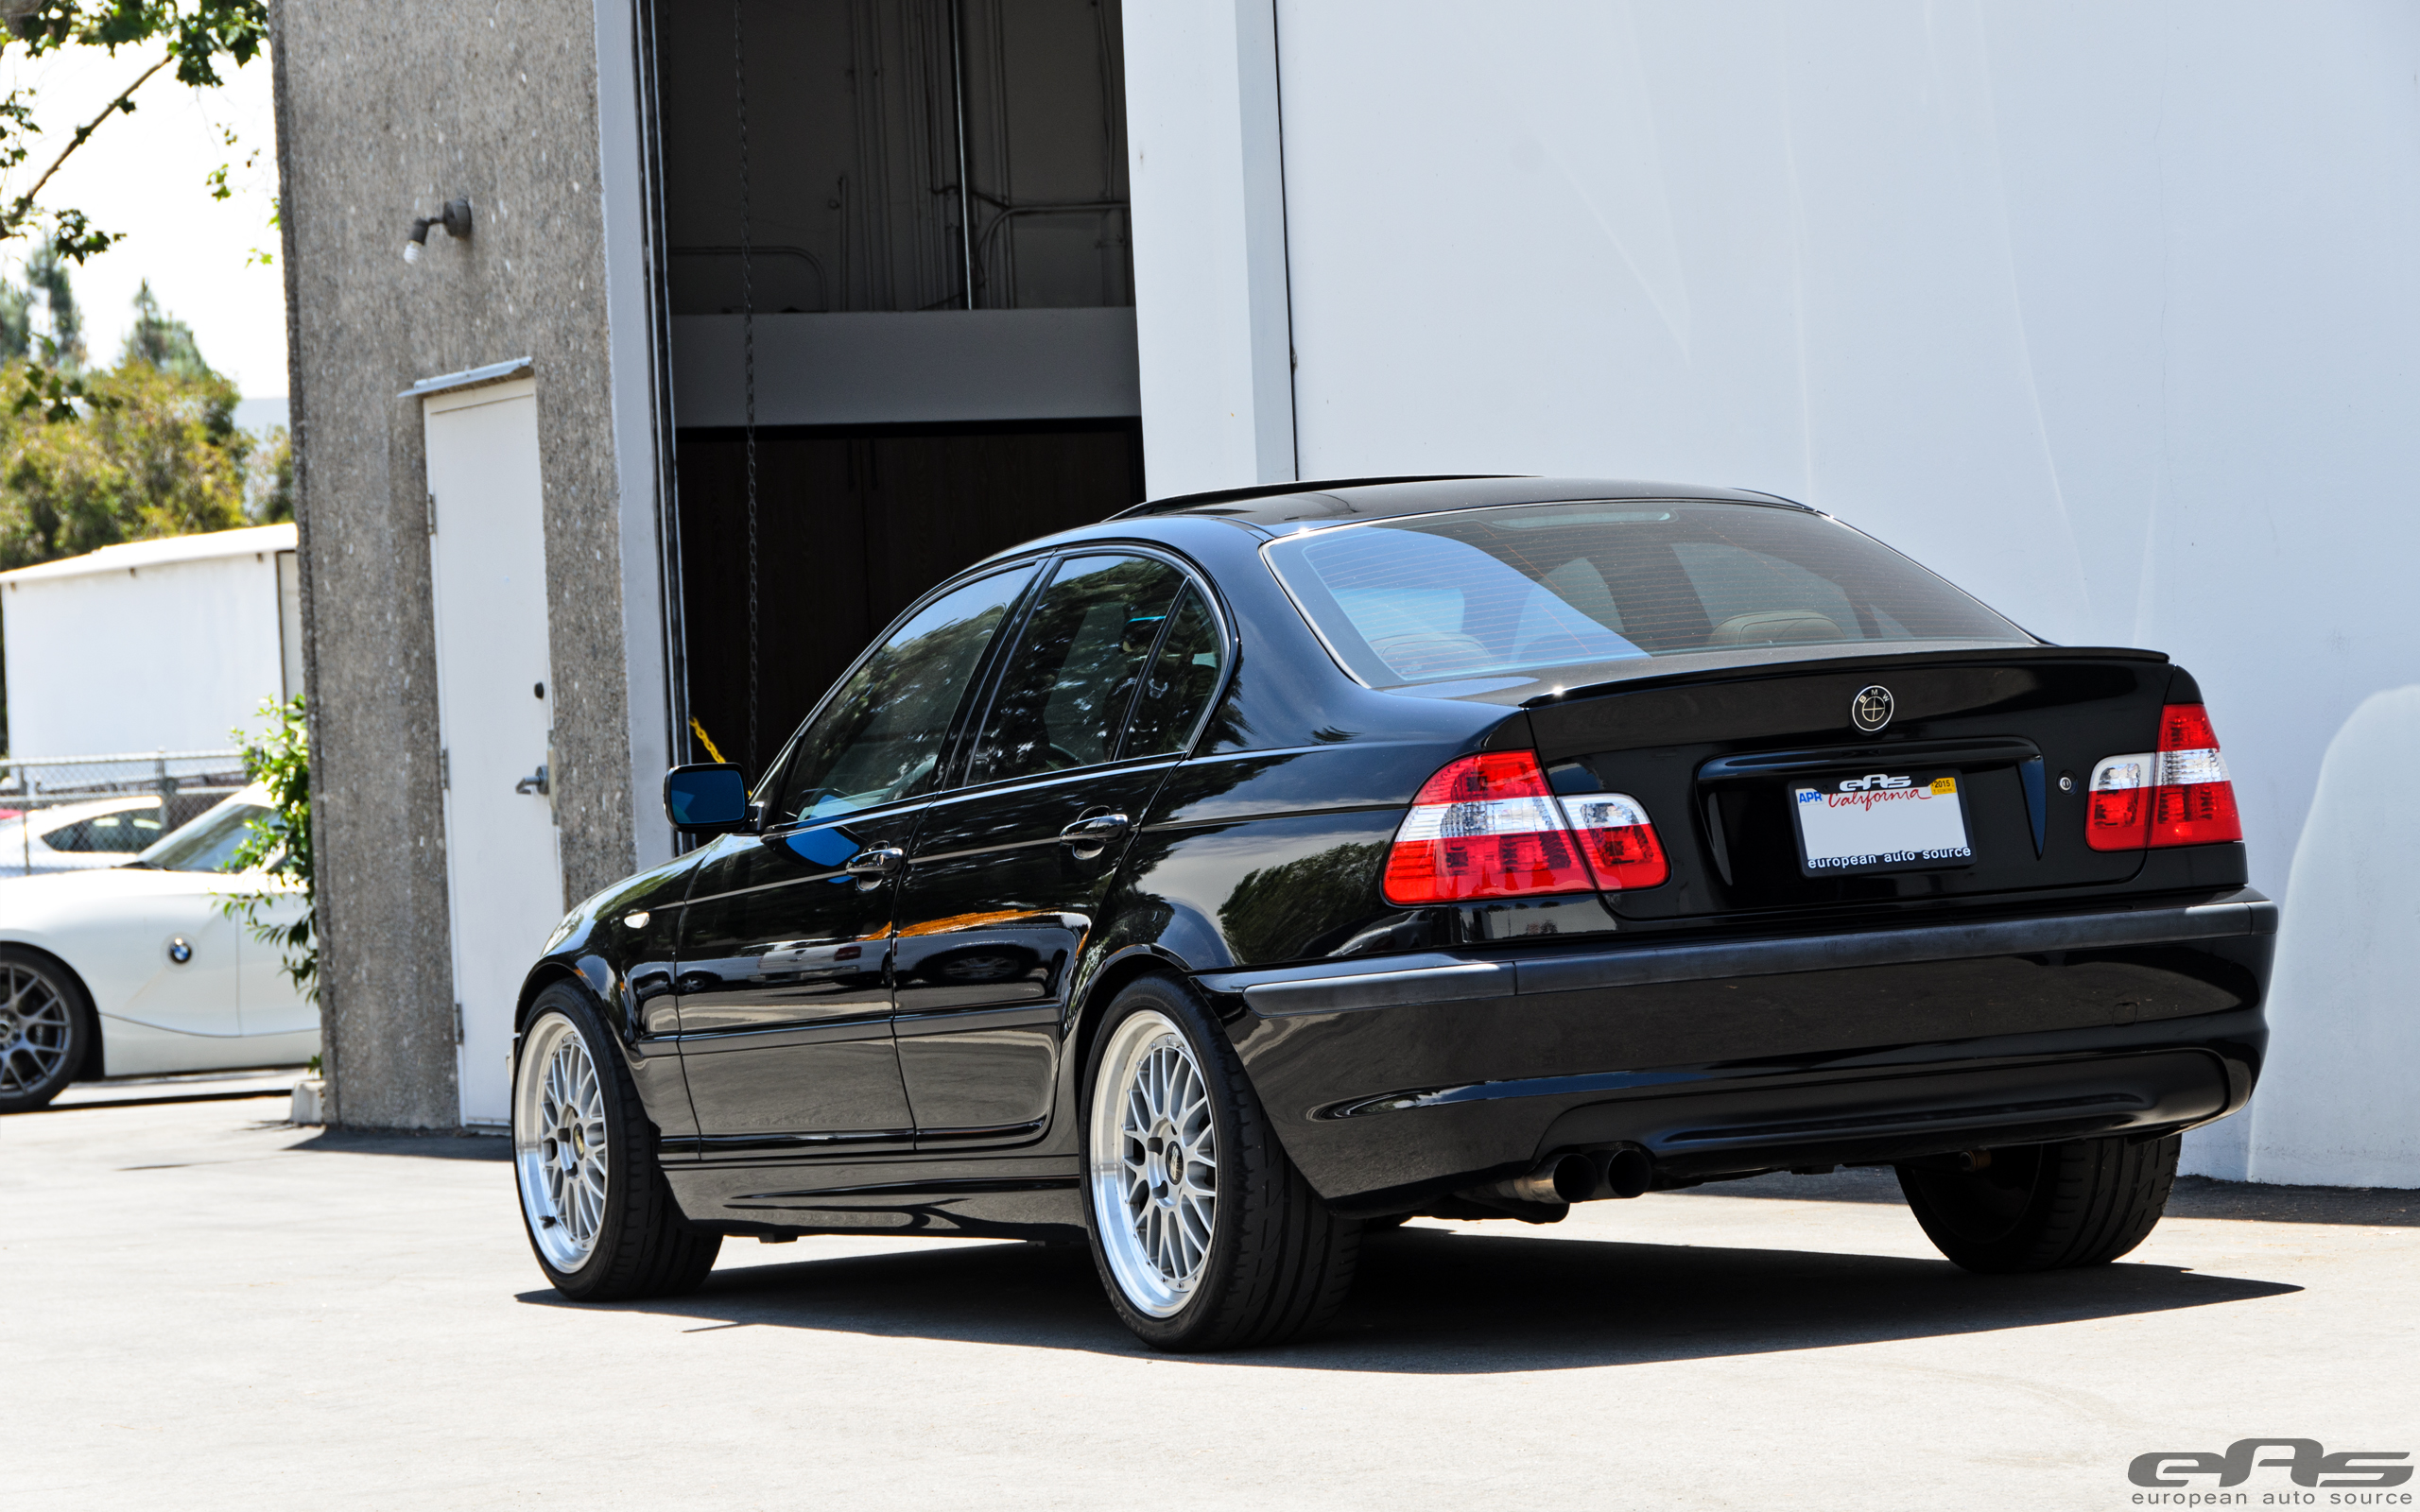 E46 330i Zhp Gets Supercharged Bmw Performance Parts Amp Services